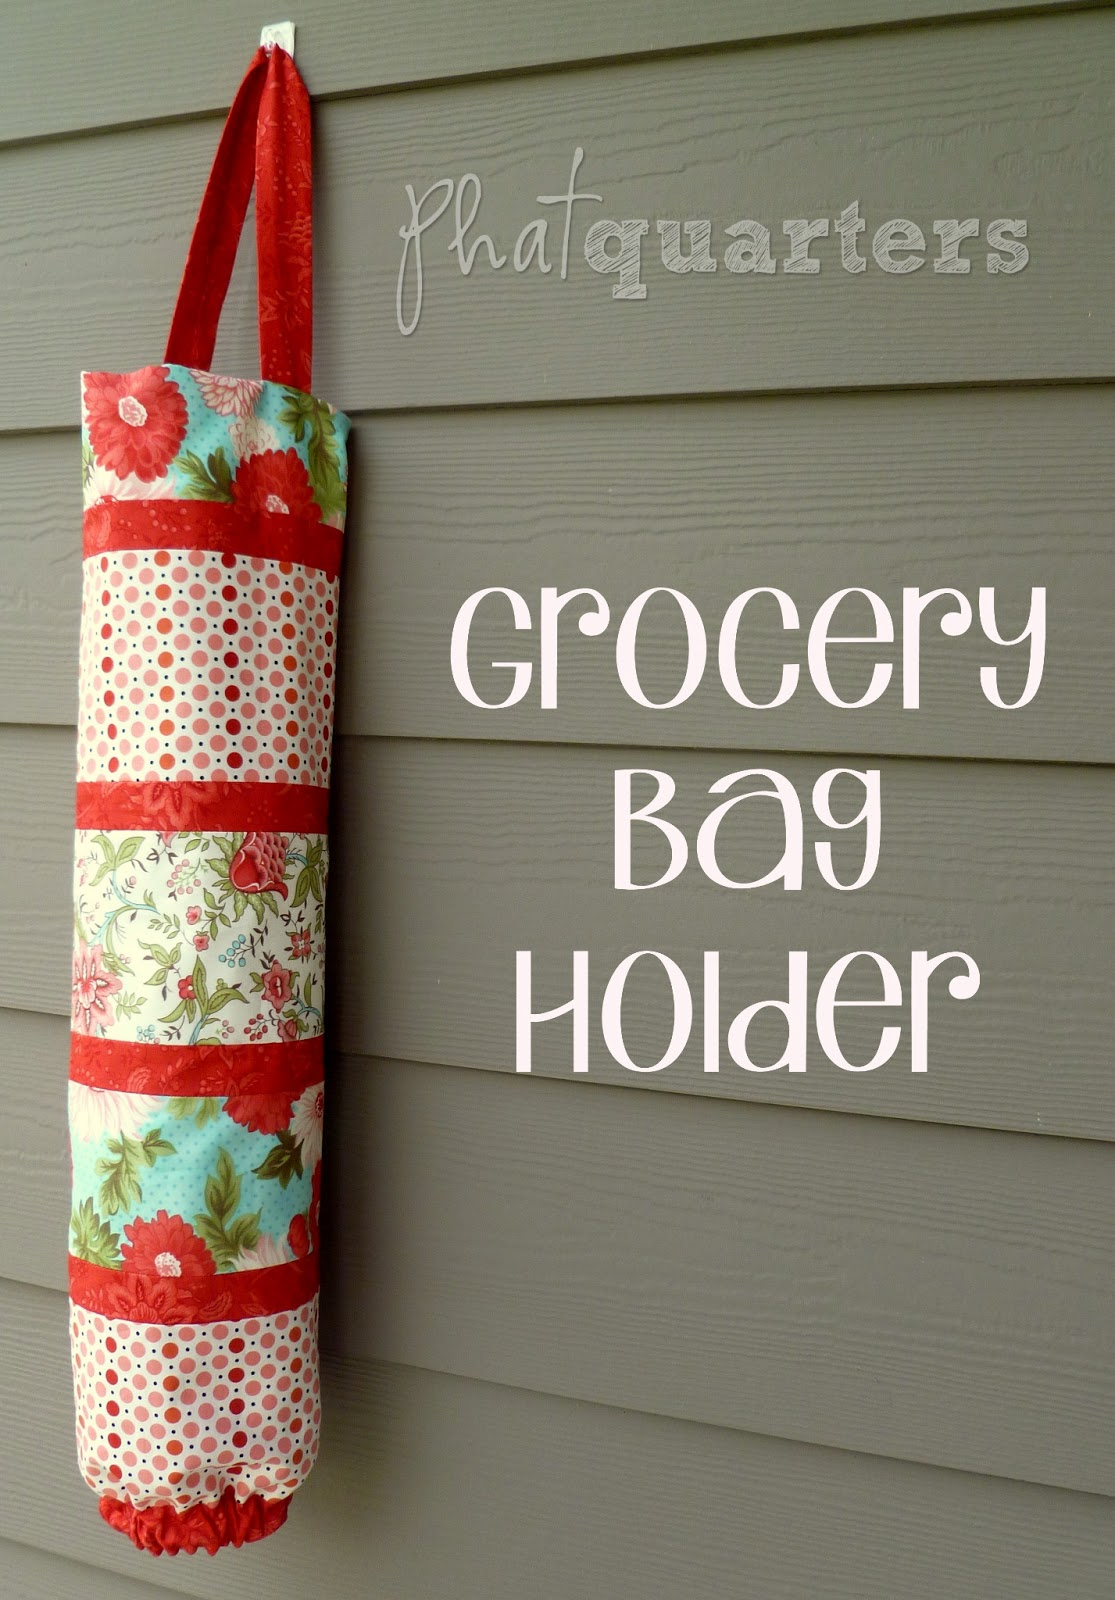 Phat quarters grocery bag holder